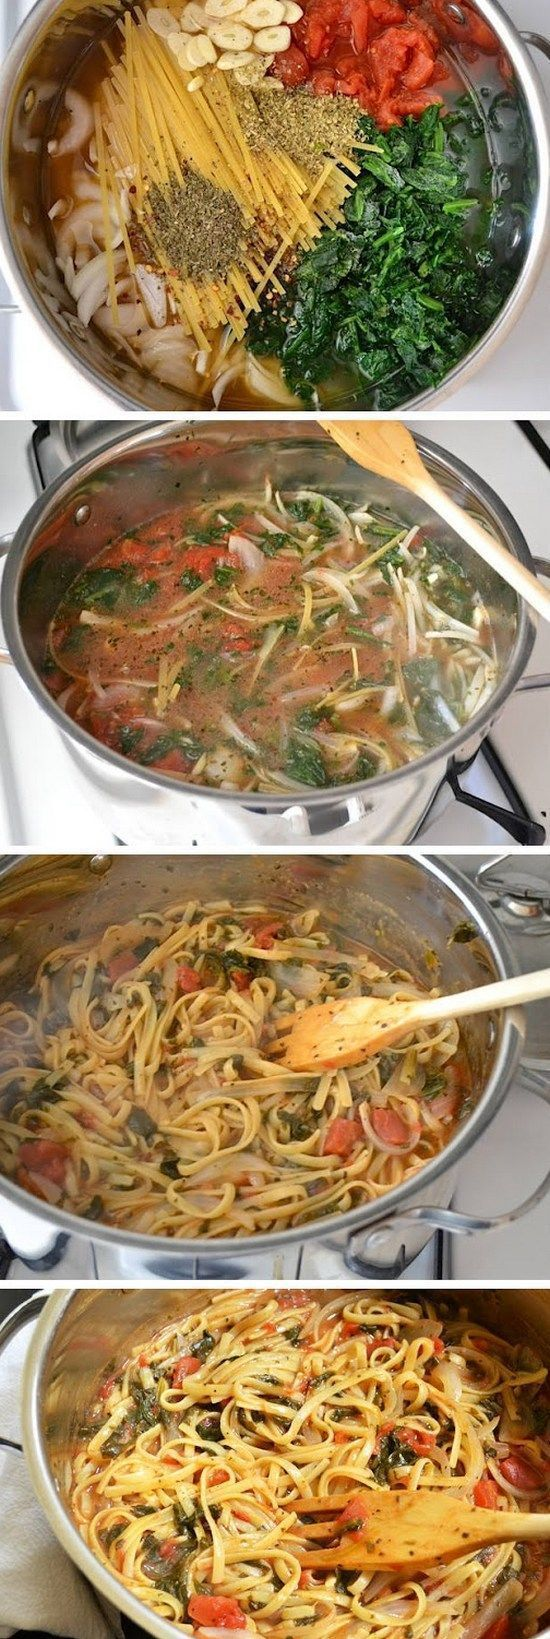 Can be modified for Fodmap. Italian Wonderpot Recipe! The Pasta Cooks in a Mixture of Broth, Herbs, and Aromatics Making it Super Yummy!Can be modified for Fodmap. Italian Wonderpot Recipe! The Pasta Cooks in a Mixture of Broth, Herbs, and Aromatics Making it Super Yummy!